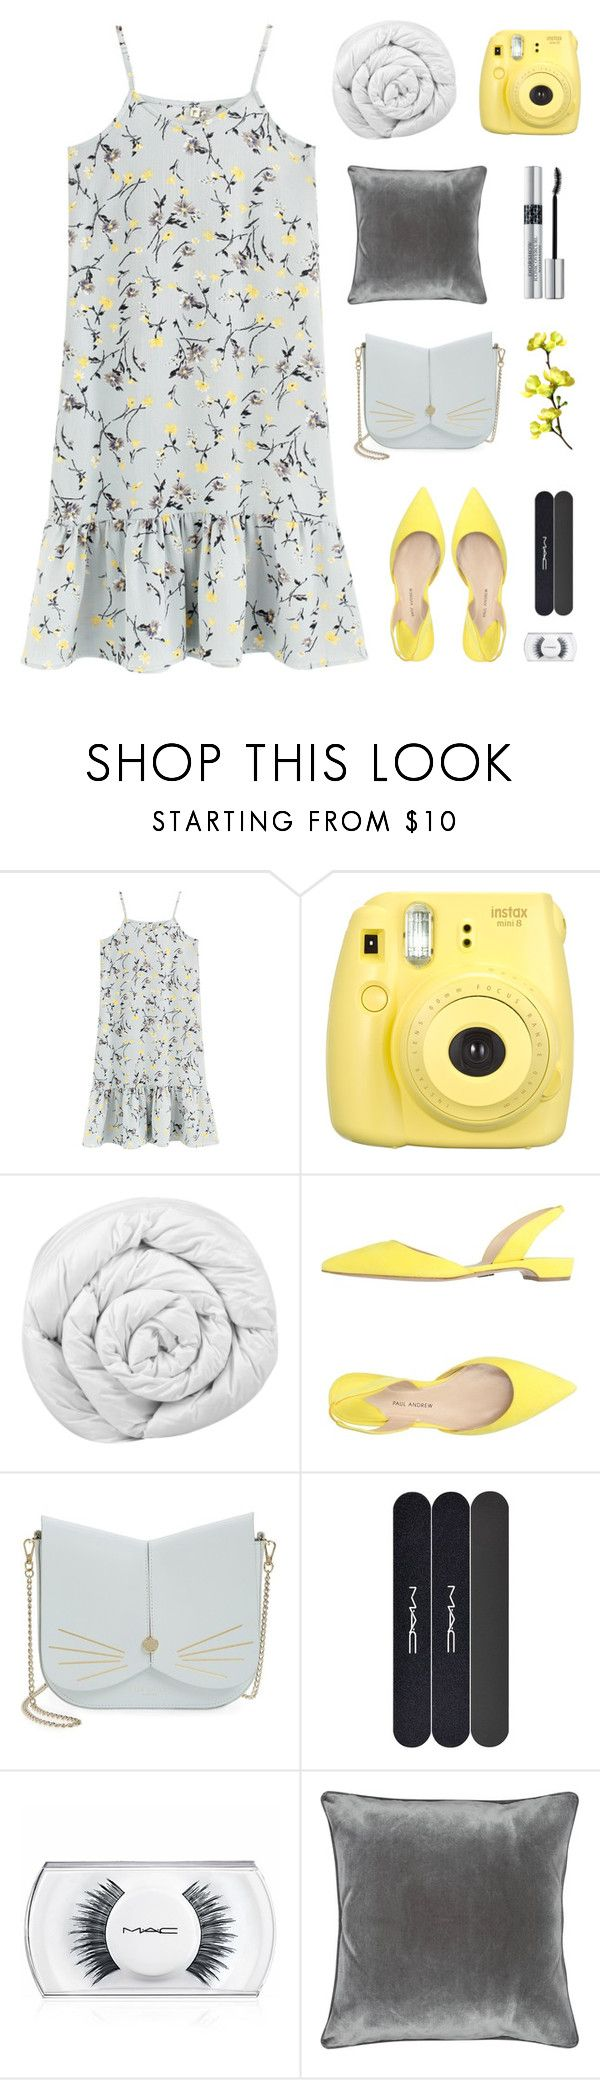 """Flowers"" by dianakhuzatyan ❤ liked on Polyvore featuring Fujifilm, Brinkhaus, Paul Andrew, Ted Baker, MAC Cosmetics, M&Co and Christian Dior"